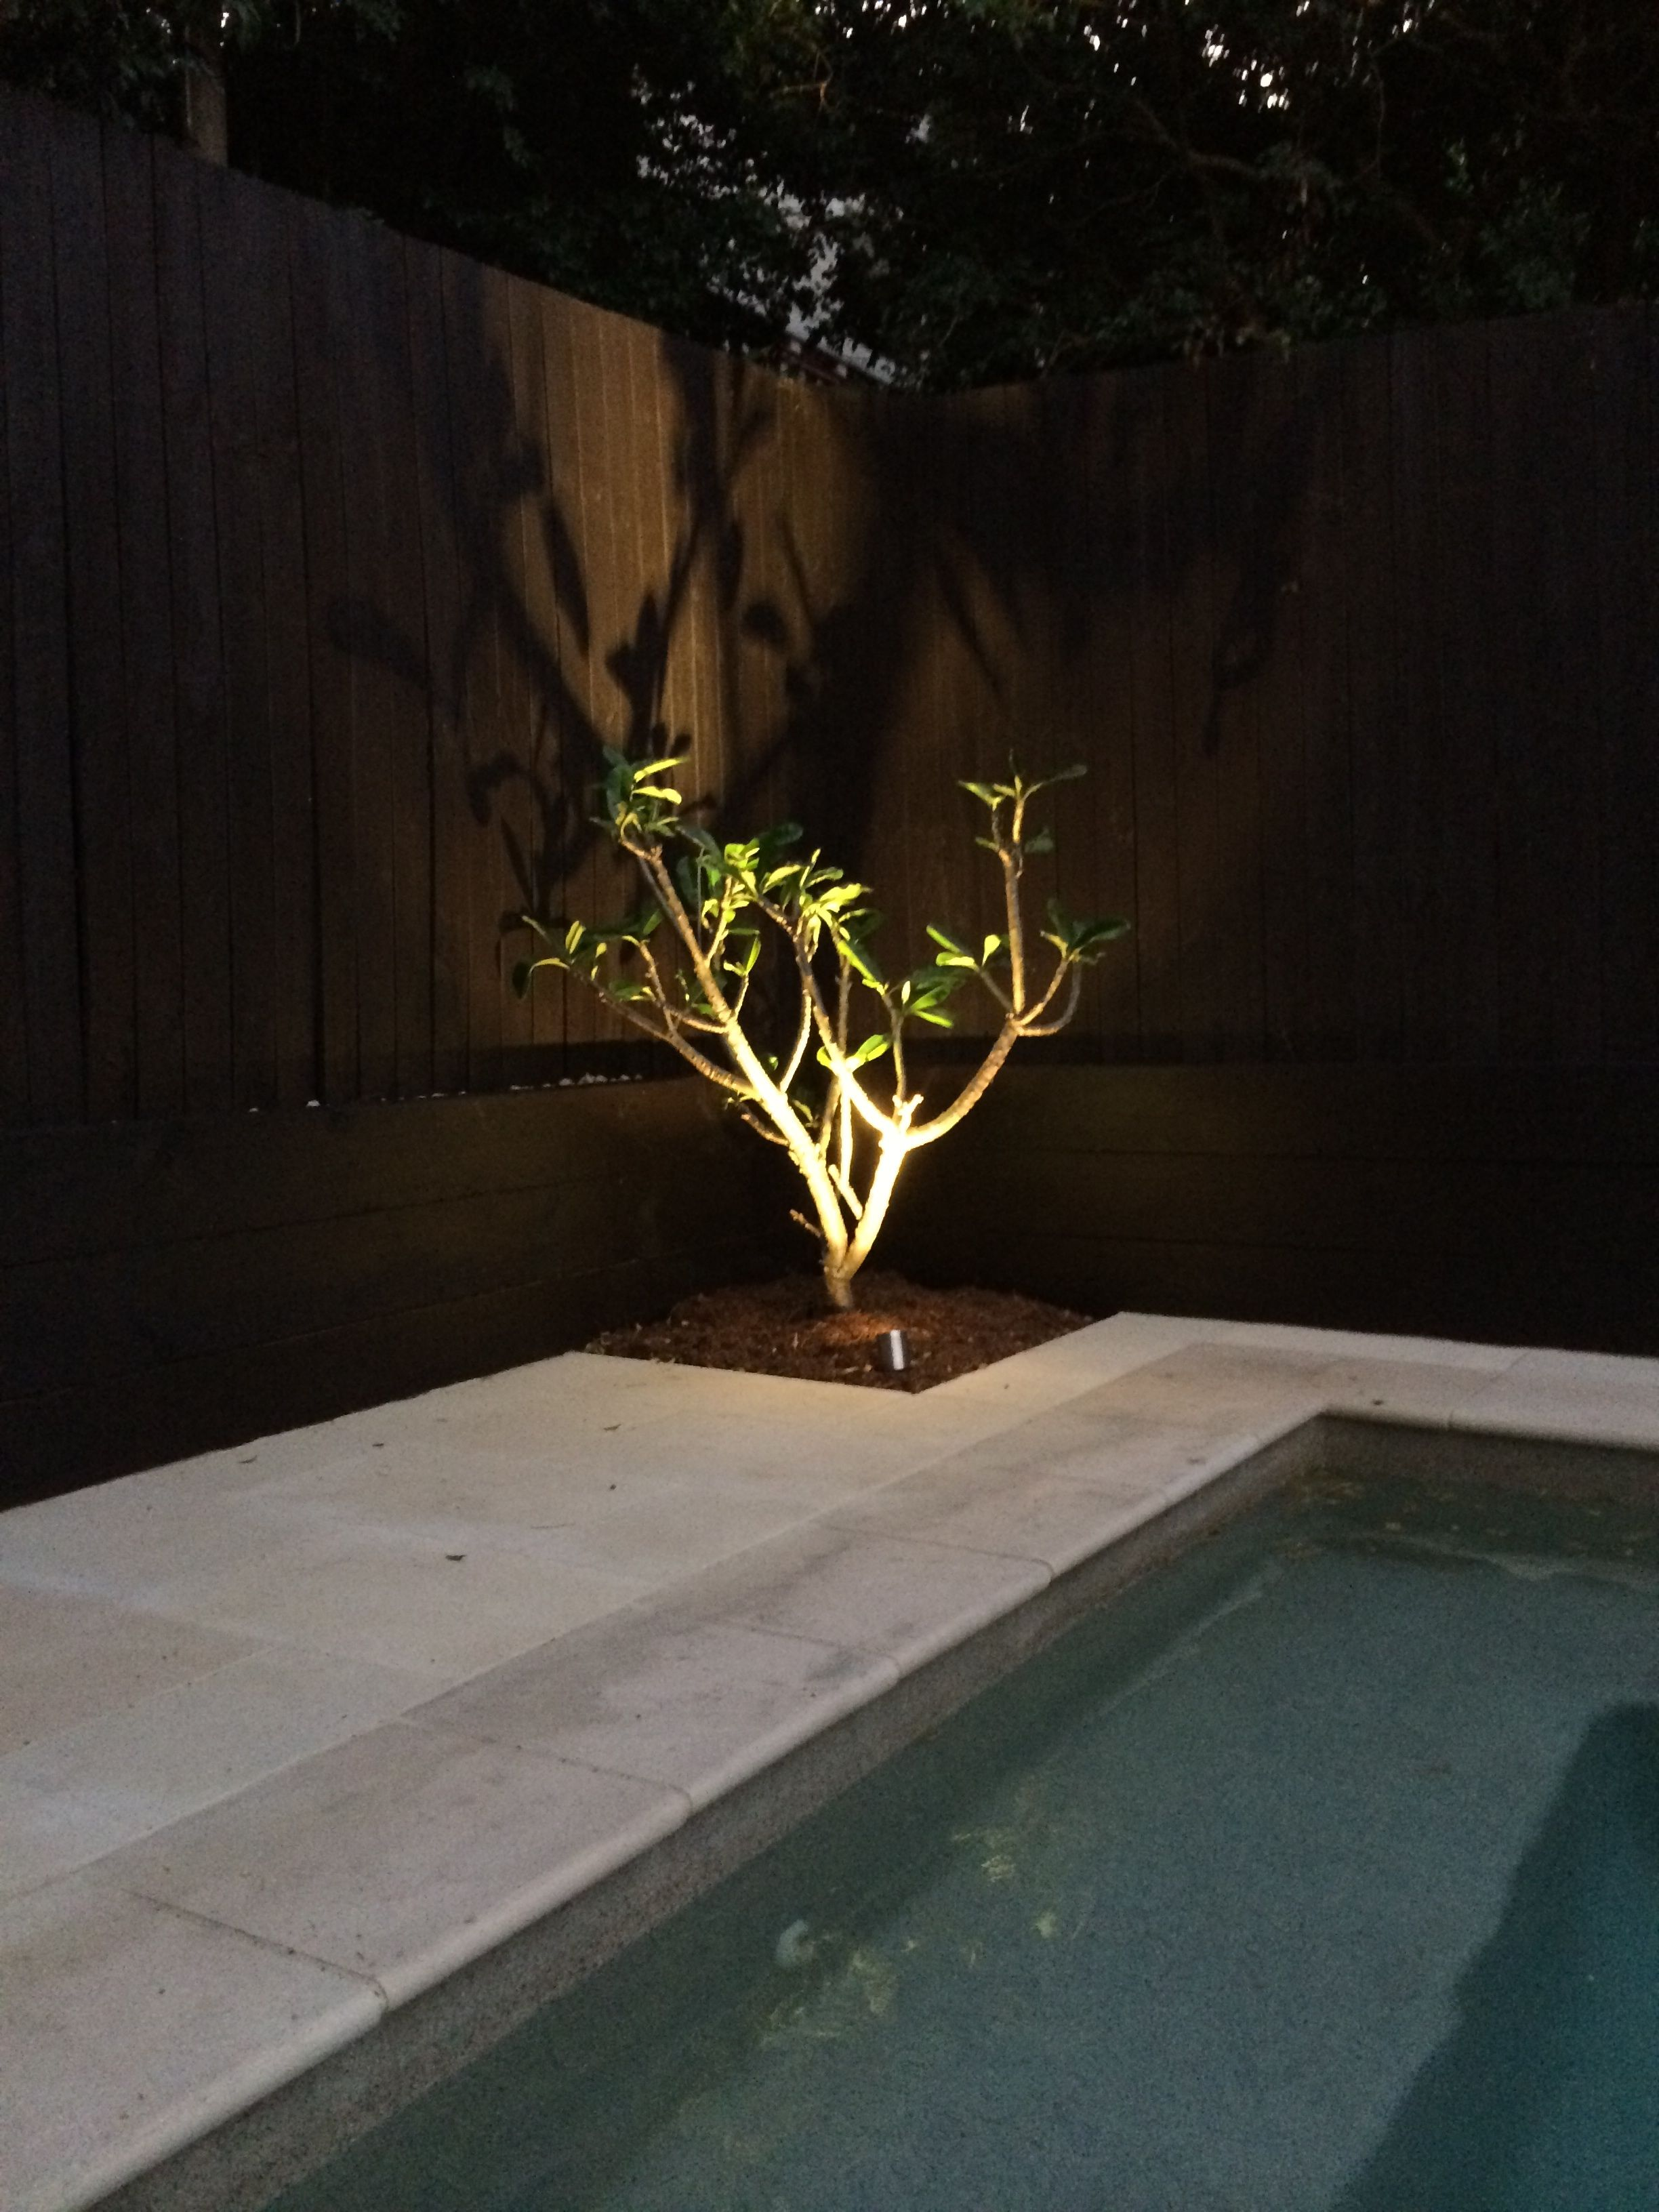 Stainless steel 'spike' garden light used to light up